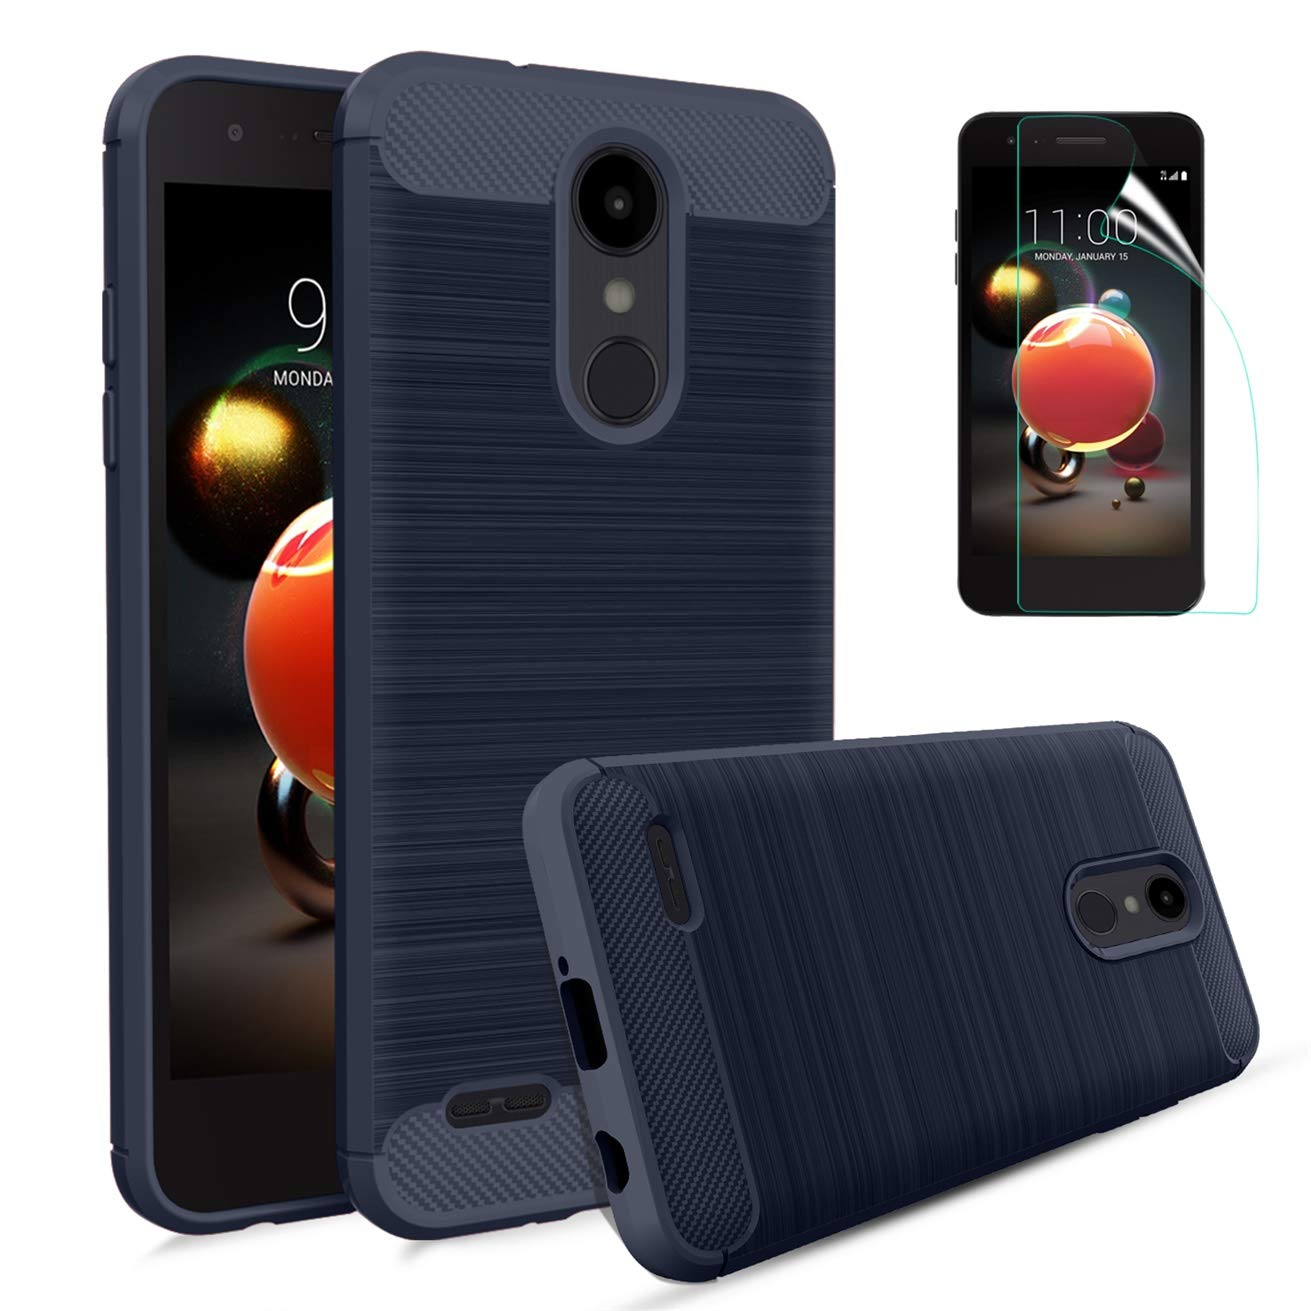 LG Aristo 2/Aristo 2 Plus/Aristo 3/Aristo 3 Plus/Tribute Dynasty/Rebel 4/Phoenix 4/Fortune 2/Tribute Empire/Zone 4/K8S Case w/Screen Protector,Carbon Fiber Brushed Texture TPU Soft Case-Navy Blue